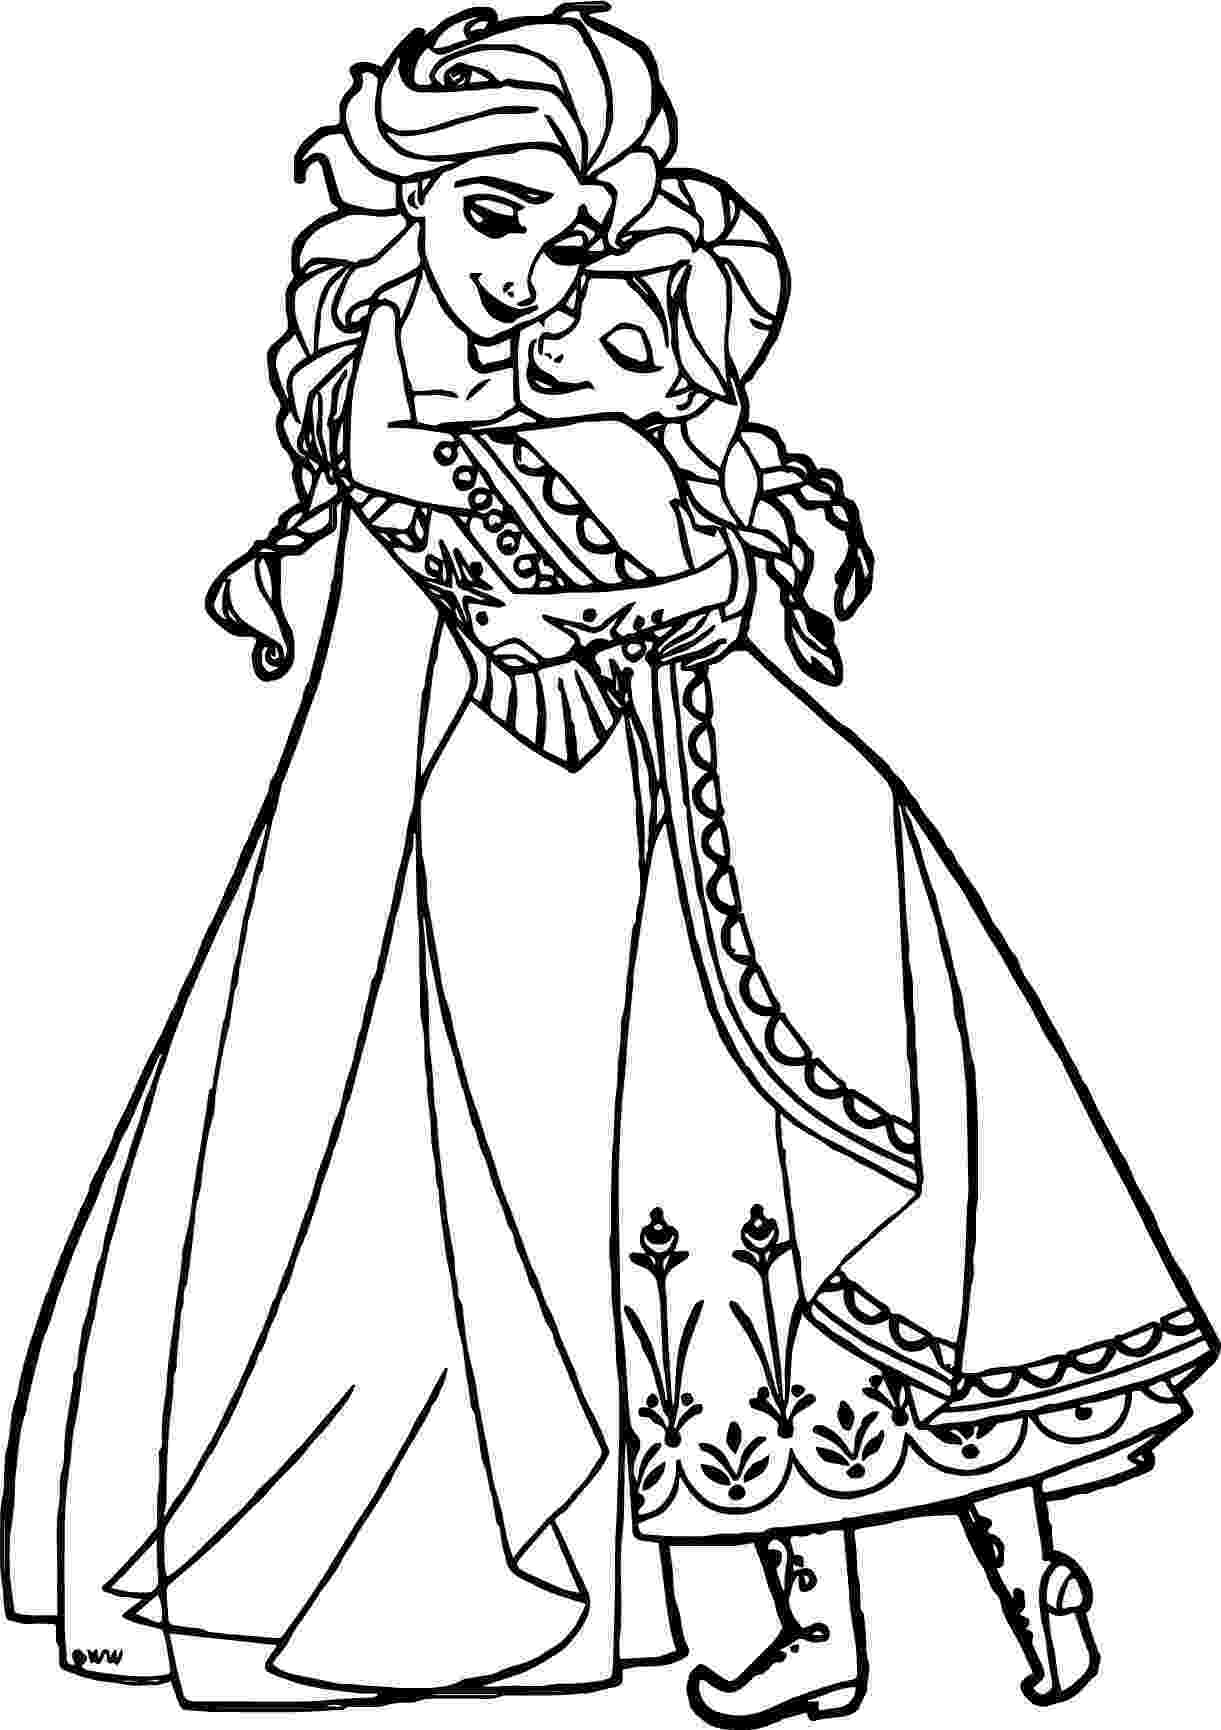 free coloring pages elsa and anna anna elsa hugging coloring page wecoloringpagecom elsa coloring free pages anna and